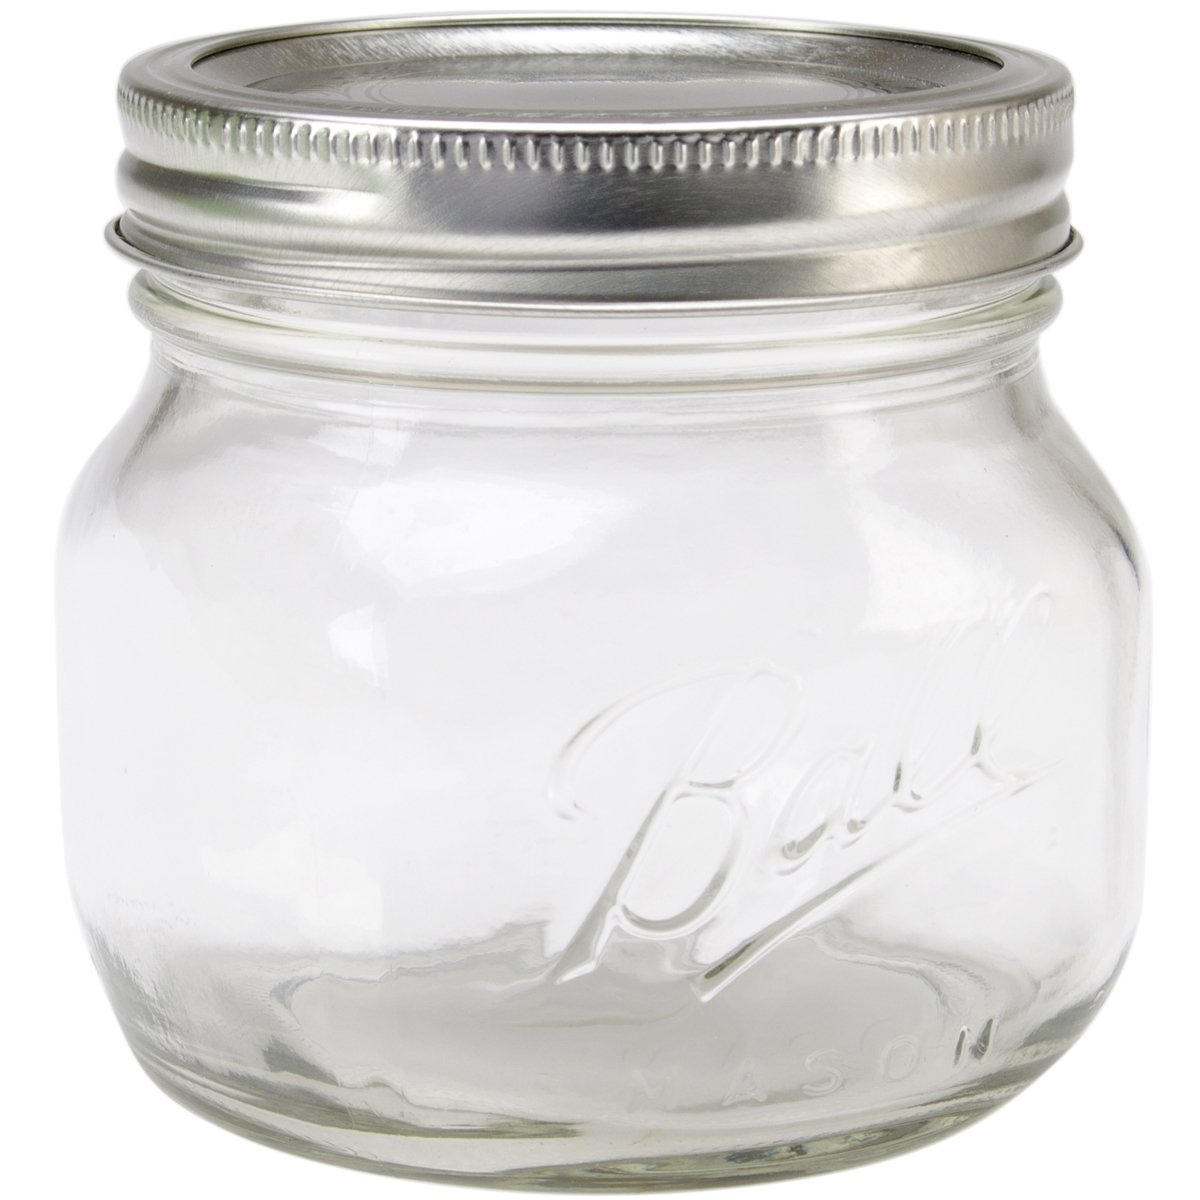 ball 16 oz mason jars. your buying guide to all things mason jar! everything you ever wanted know about ball 16 oz jars